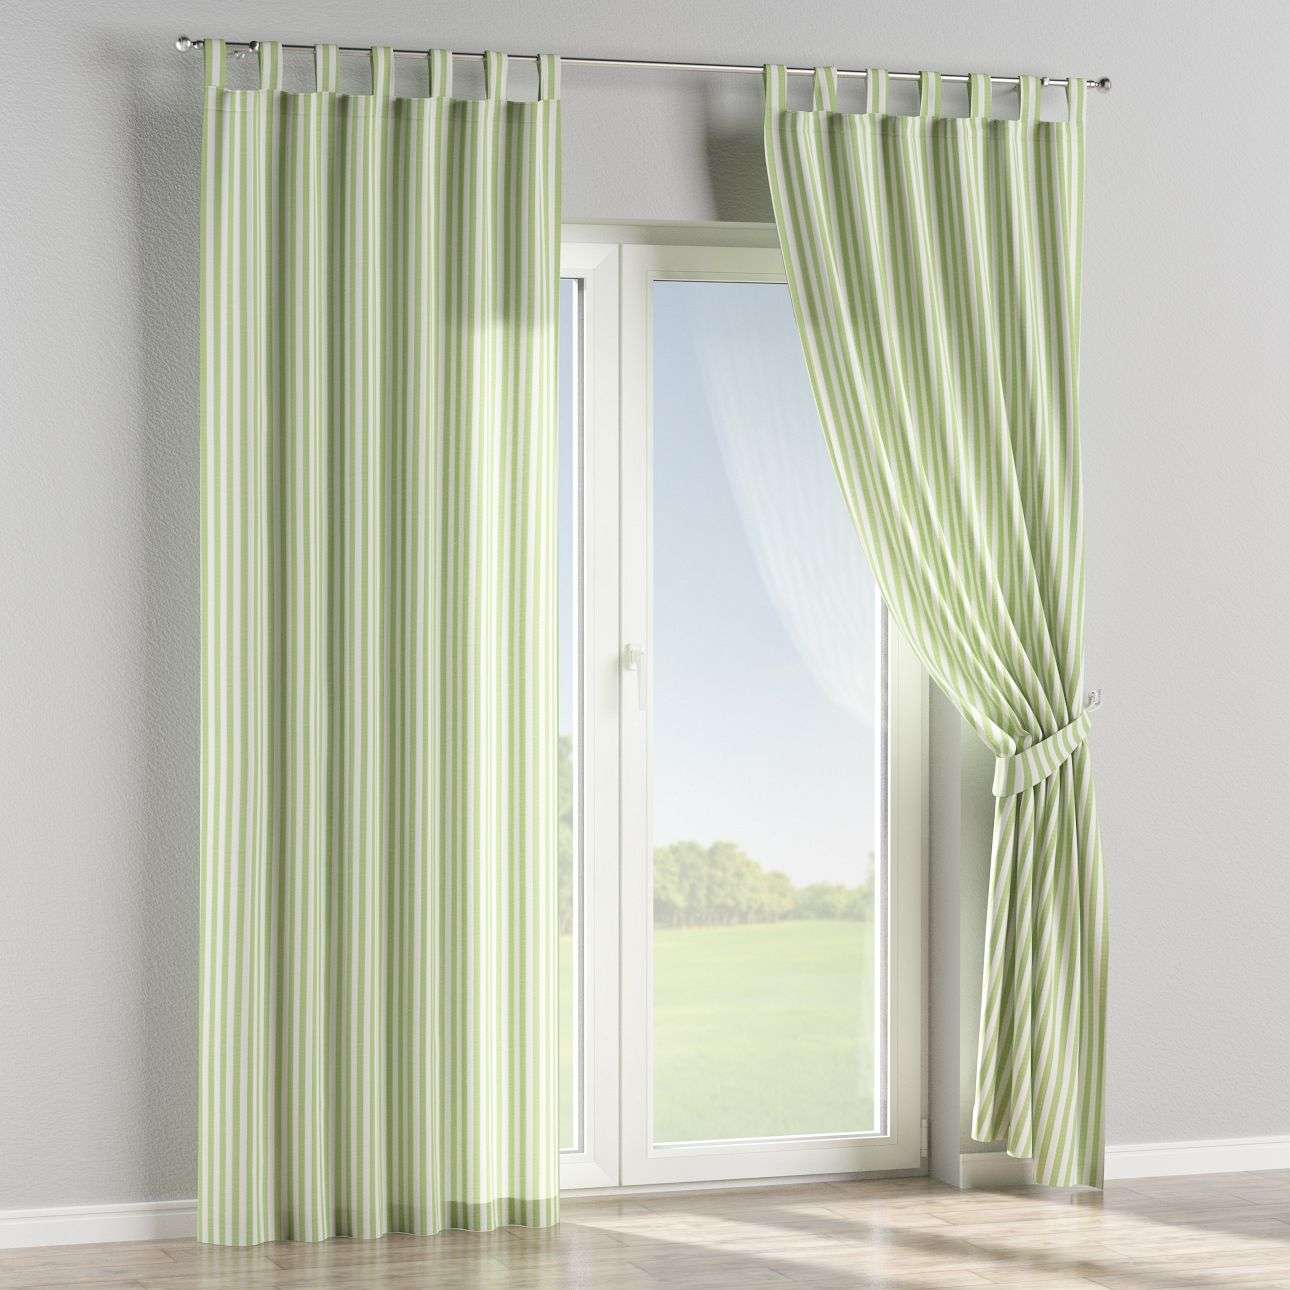 Tab top curtains 130 × 260 cm (51 × 102 inch) in collection Quadro, fabric: 136-35